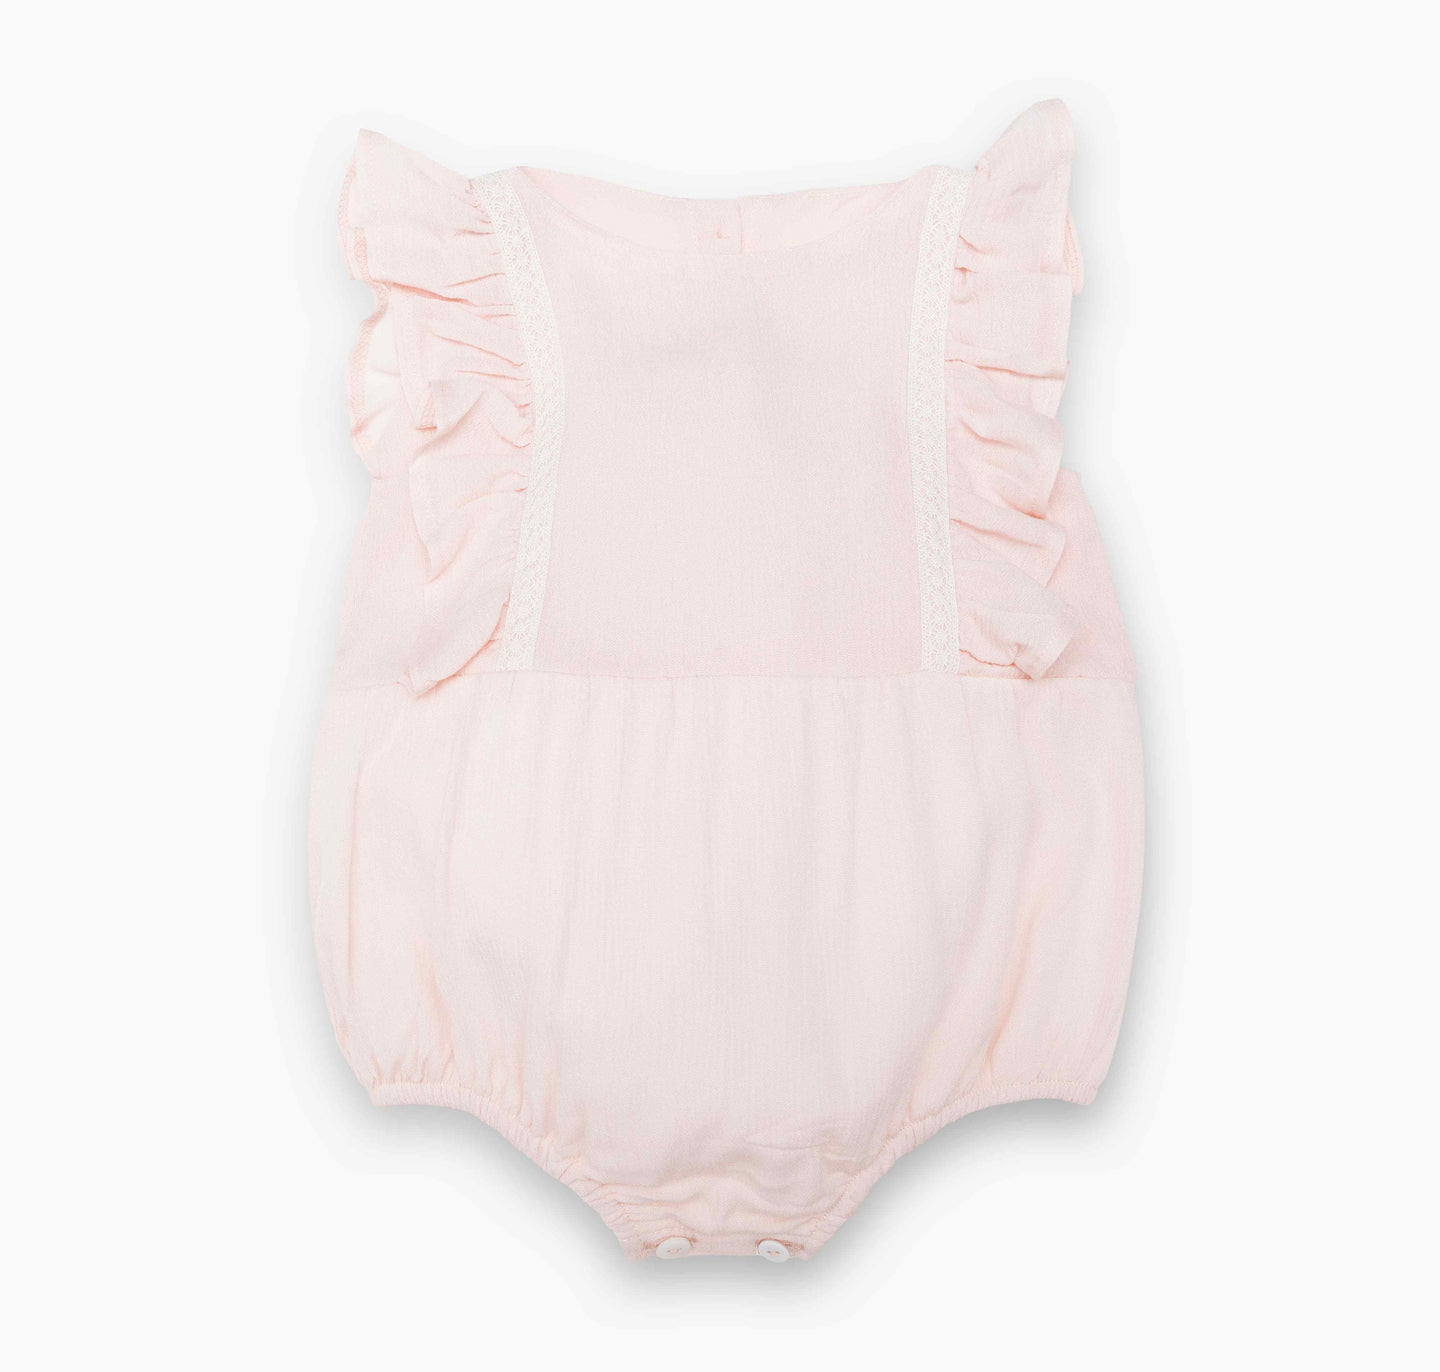 Adorable Baby Romper with a delicate blush pink gauze, cute ruffles and cotton lace details. Vintage inspired. Lined with cotton.